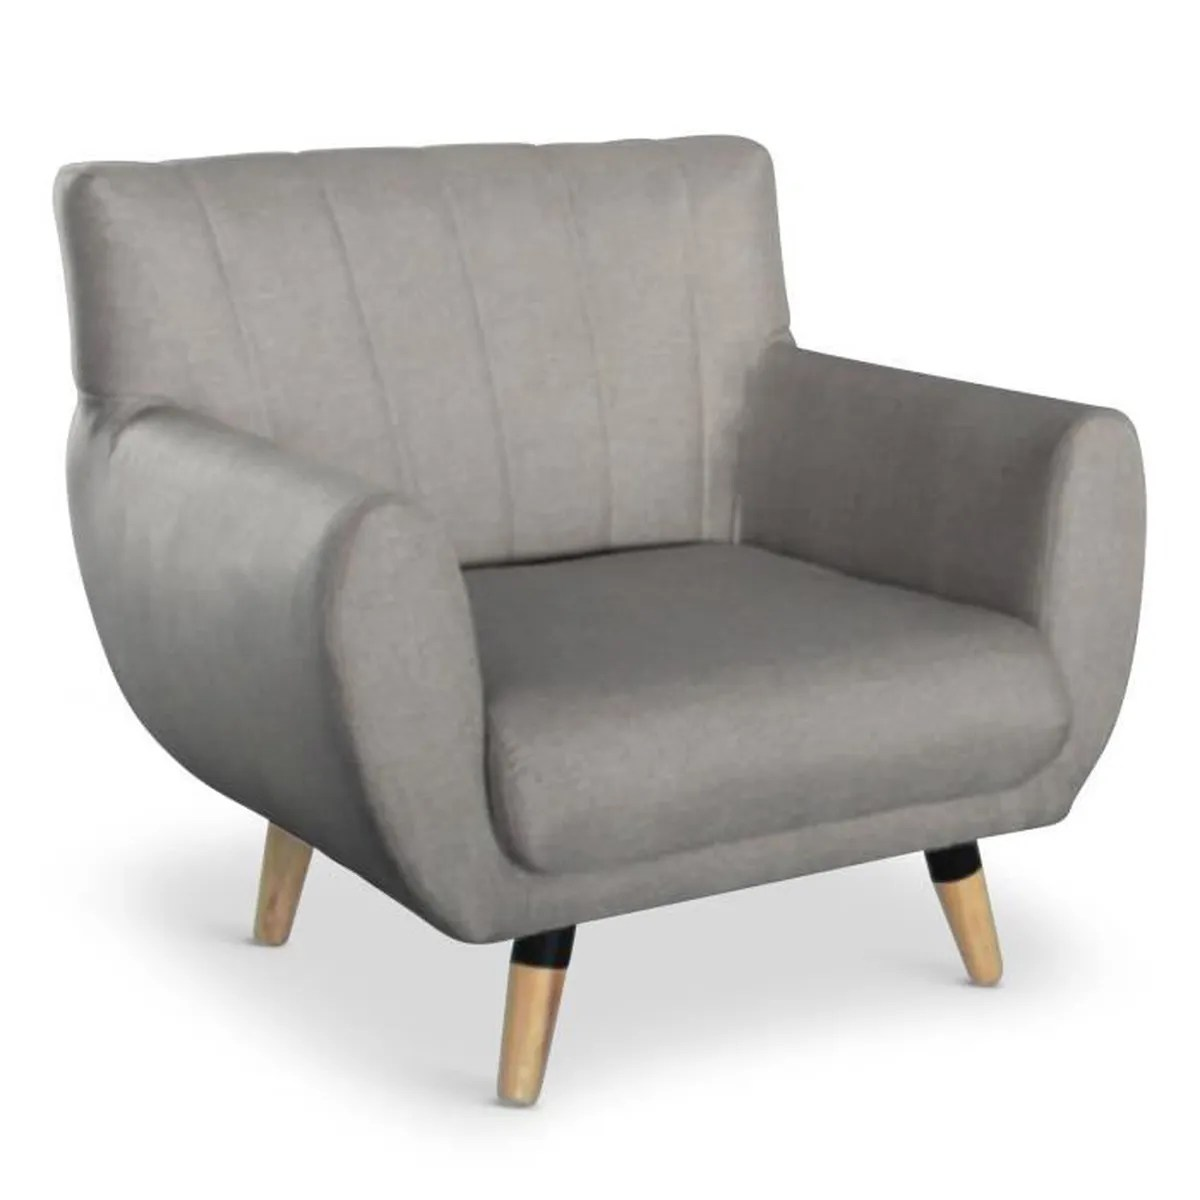 Https://www.menzzo.fr/scandinave/fauteuils-scandinaves.html Fauteuil Scandinave Mirabo Taupe Achat Vente Fauteuil Gris